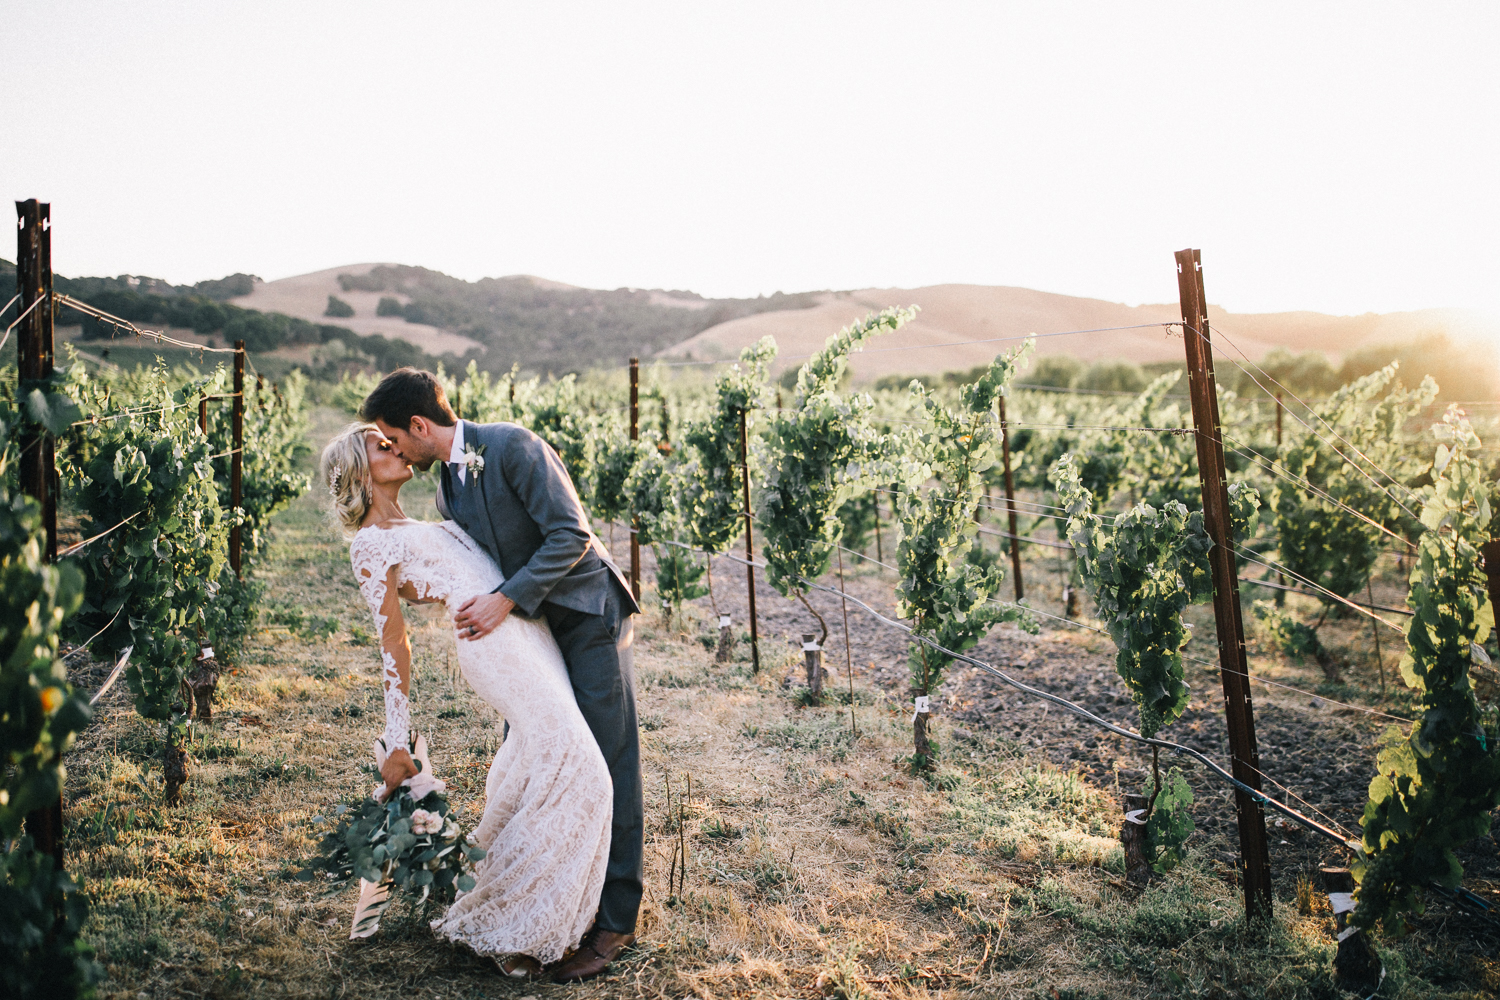 2018_08_ 112018.08.11 Cline Vinyard Wedding Blog Photos Edited For Web 0056.jpg